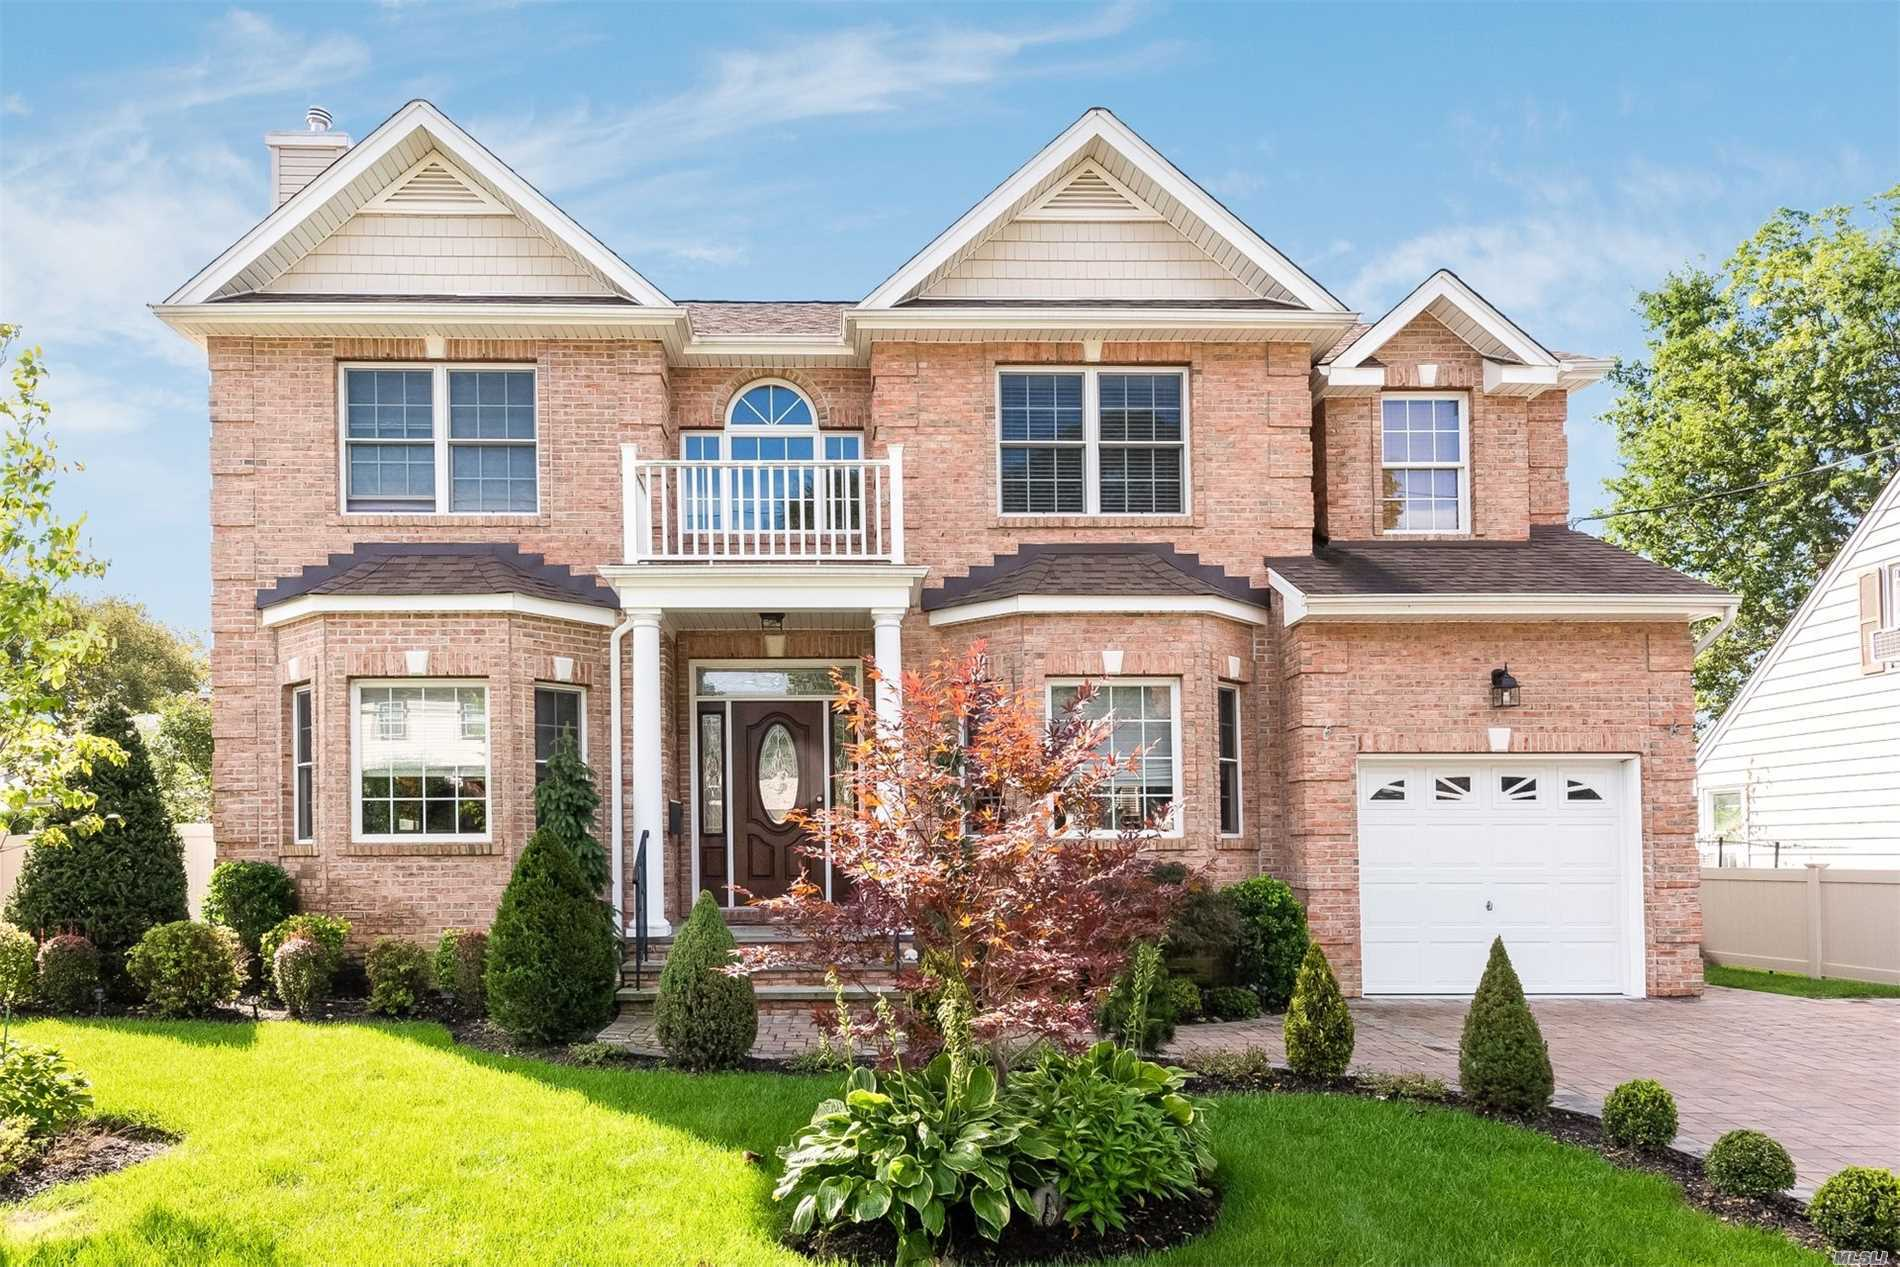 2014 New Constr col W/Soaring 2 Stry Entry, Open-Flr Concept. Fml Lr W/Gfp, Enormous Gourmet Eik W/ Adj Family Rm & Fml Dr. Hwd Flrs Throughout. 2nd Flr Offers Oversized Master With Luxurious Ensuite Bath & His/Her Walk-In Clsts. 3 Add'l Br, Hall F.Bth & Laundry Rm. Bsmt W/8' Ceilings, Gym, Media & Rec Areas & Ose.Lndscp Grounds W/Patio & Koi Pond. Herricks Schools.2019 Taxes Of $21, 757.25 Reflect A Reduction Of Over $4, 000 From 2018 Taxes. See attached 6.6% tax reducton letter for 20/21 tax.